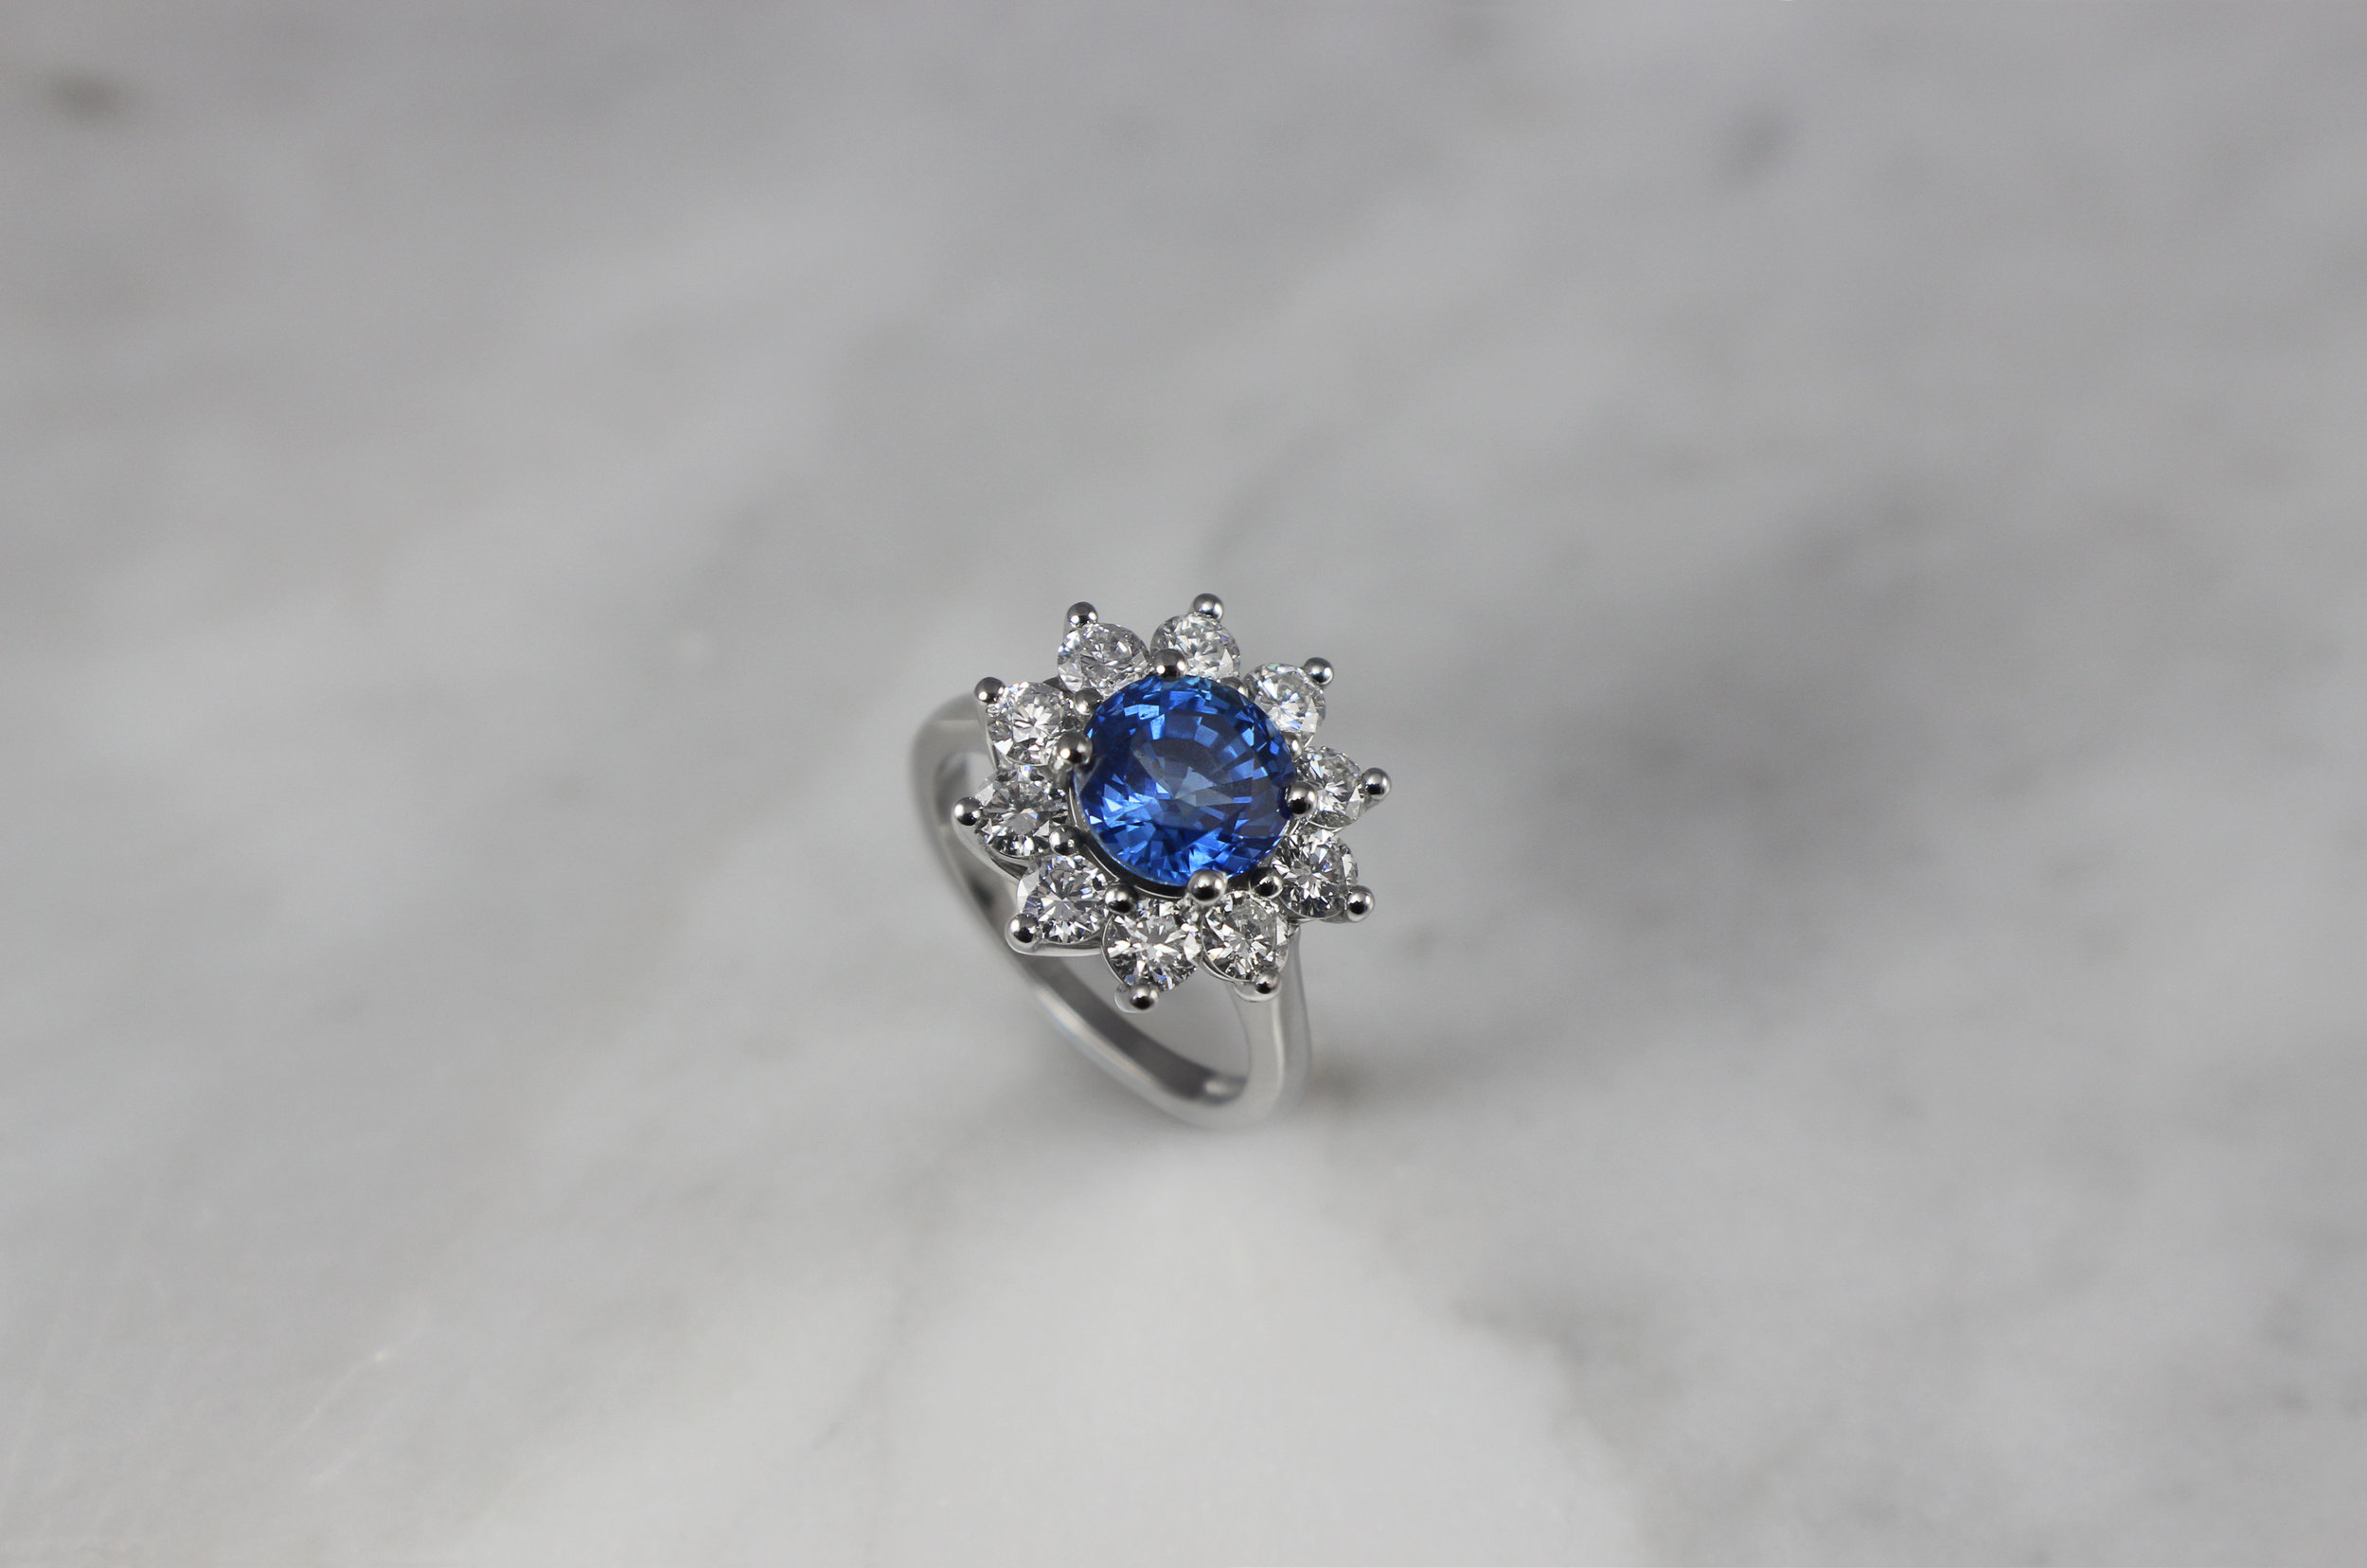 Round sapphire and diamond cluster engagement ring